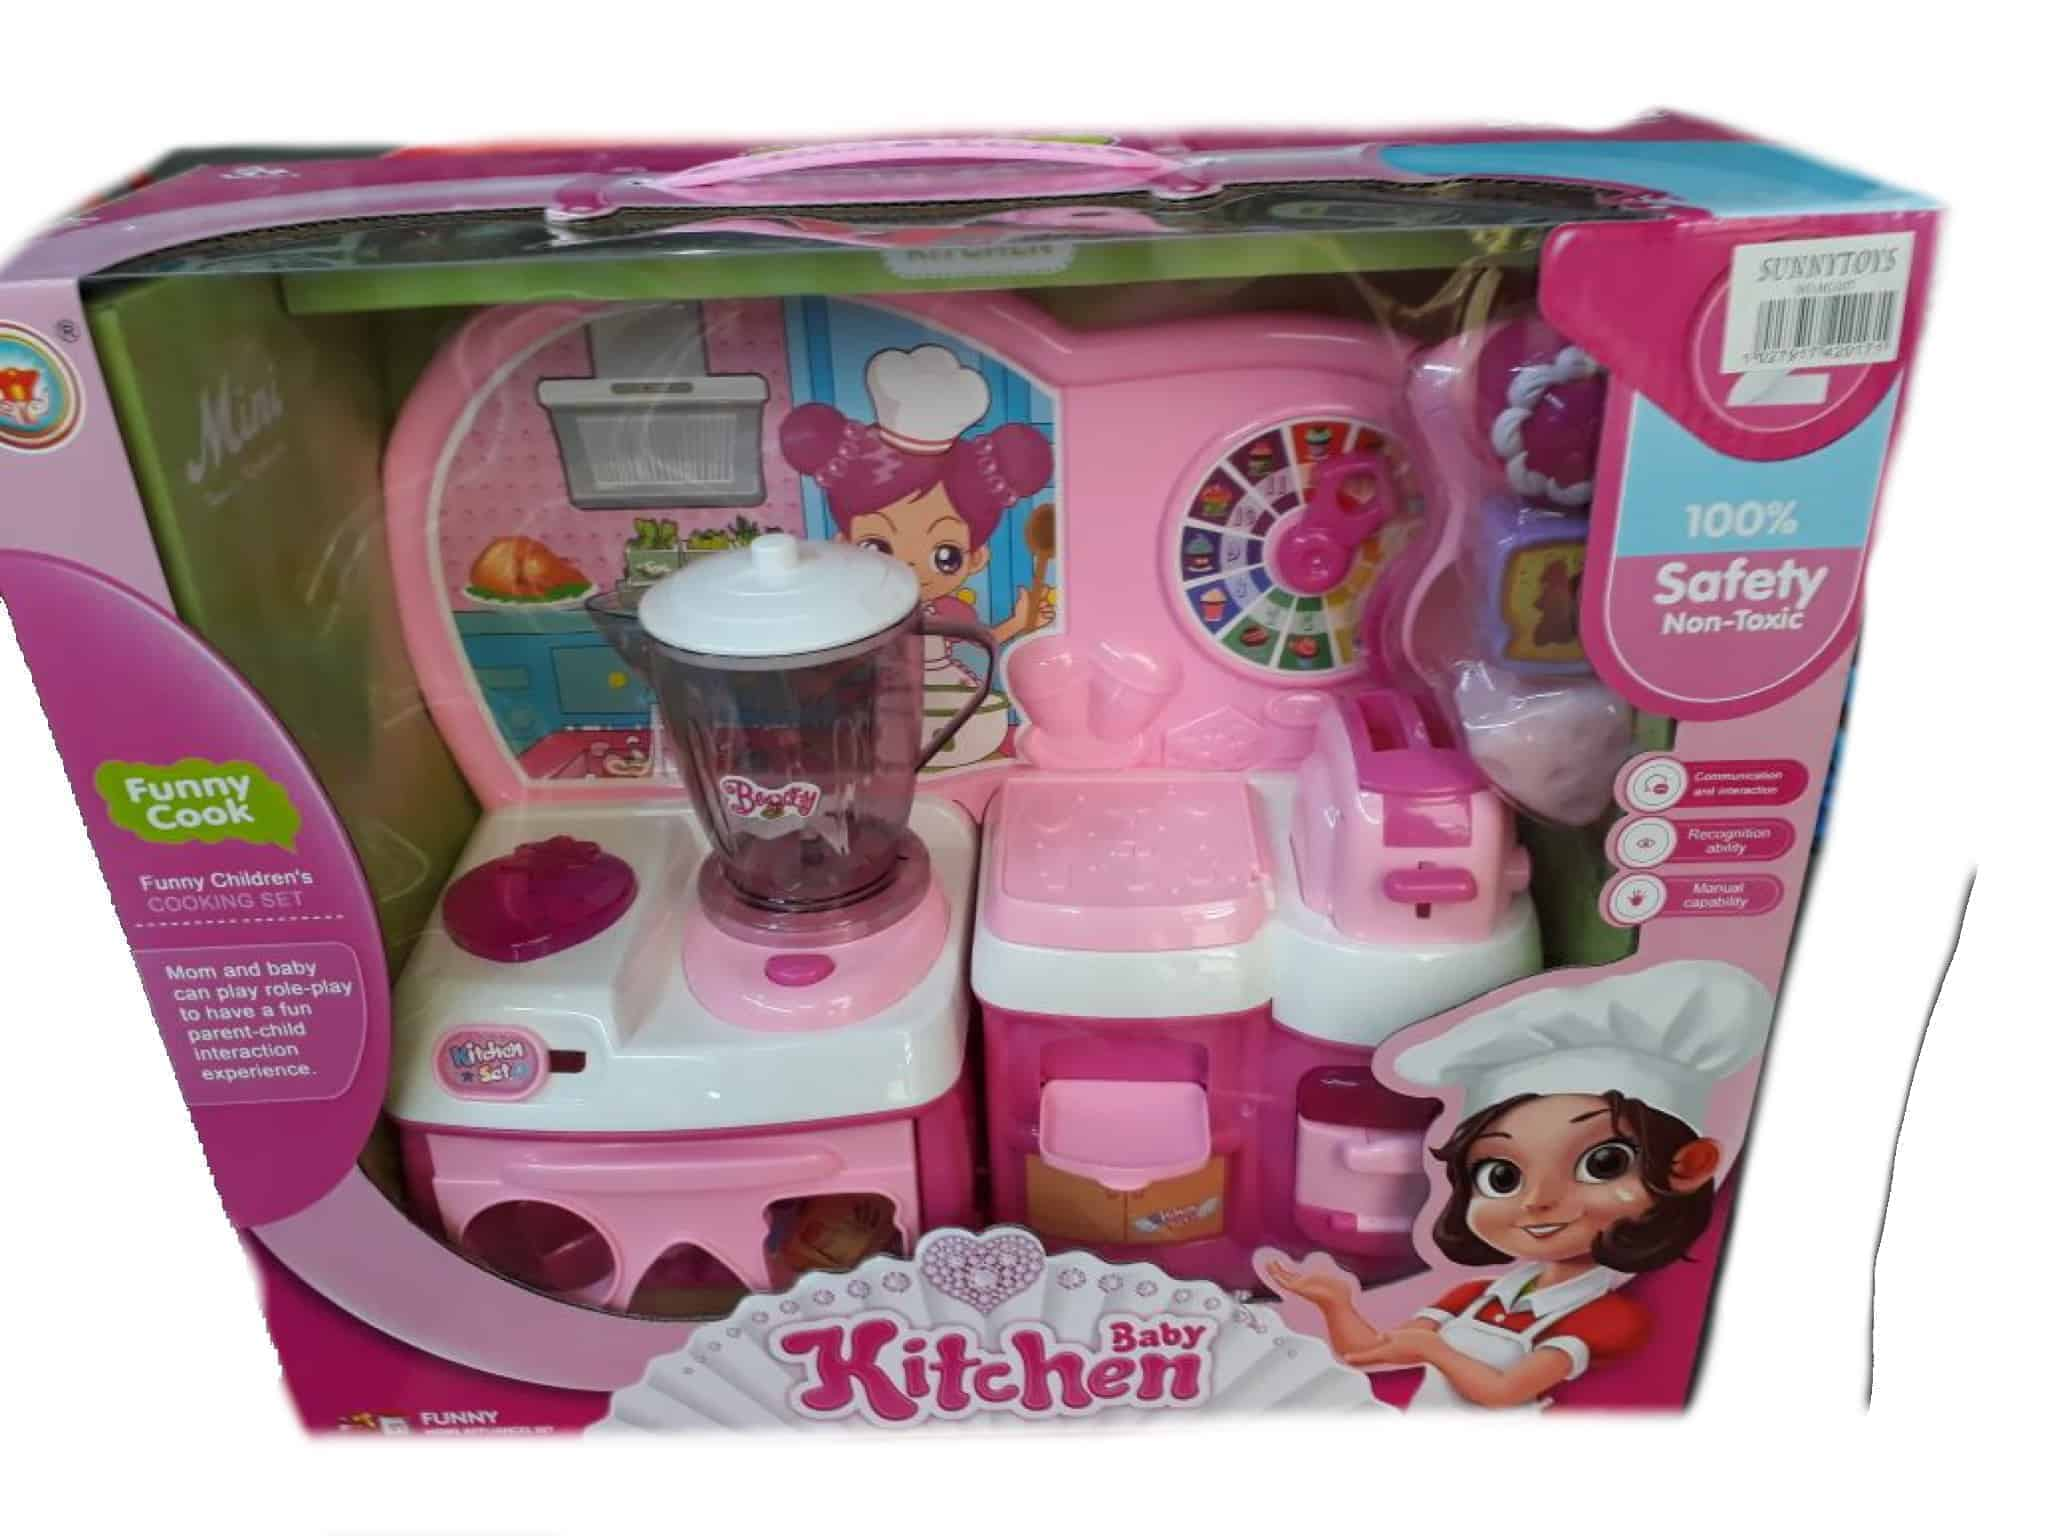 Baby kitchen set funny cook 100 safety non toxic